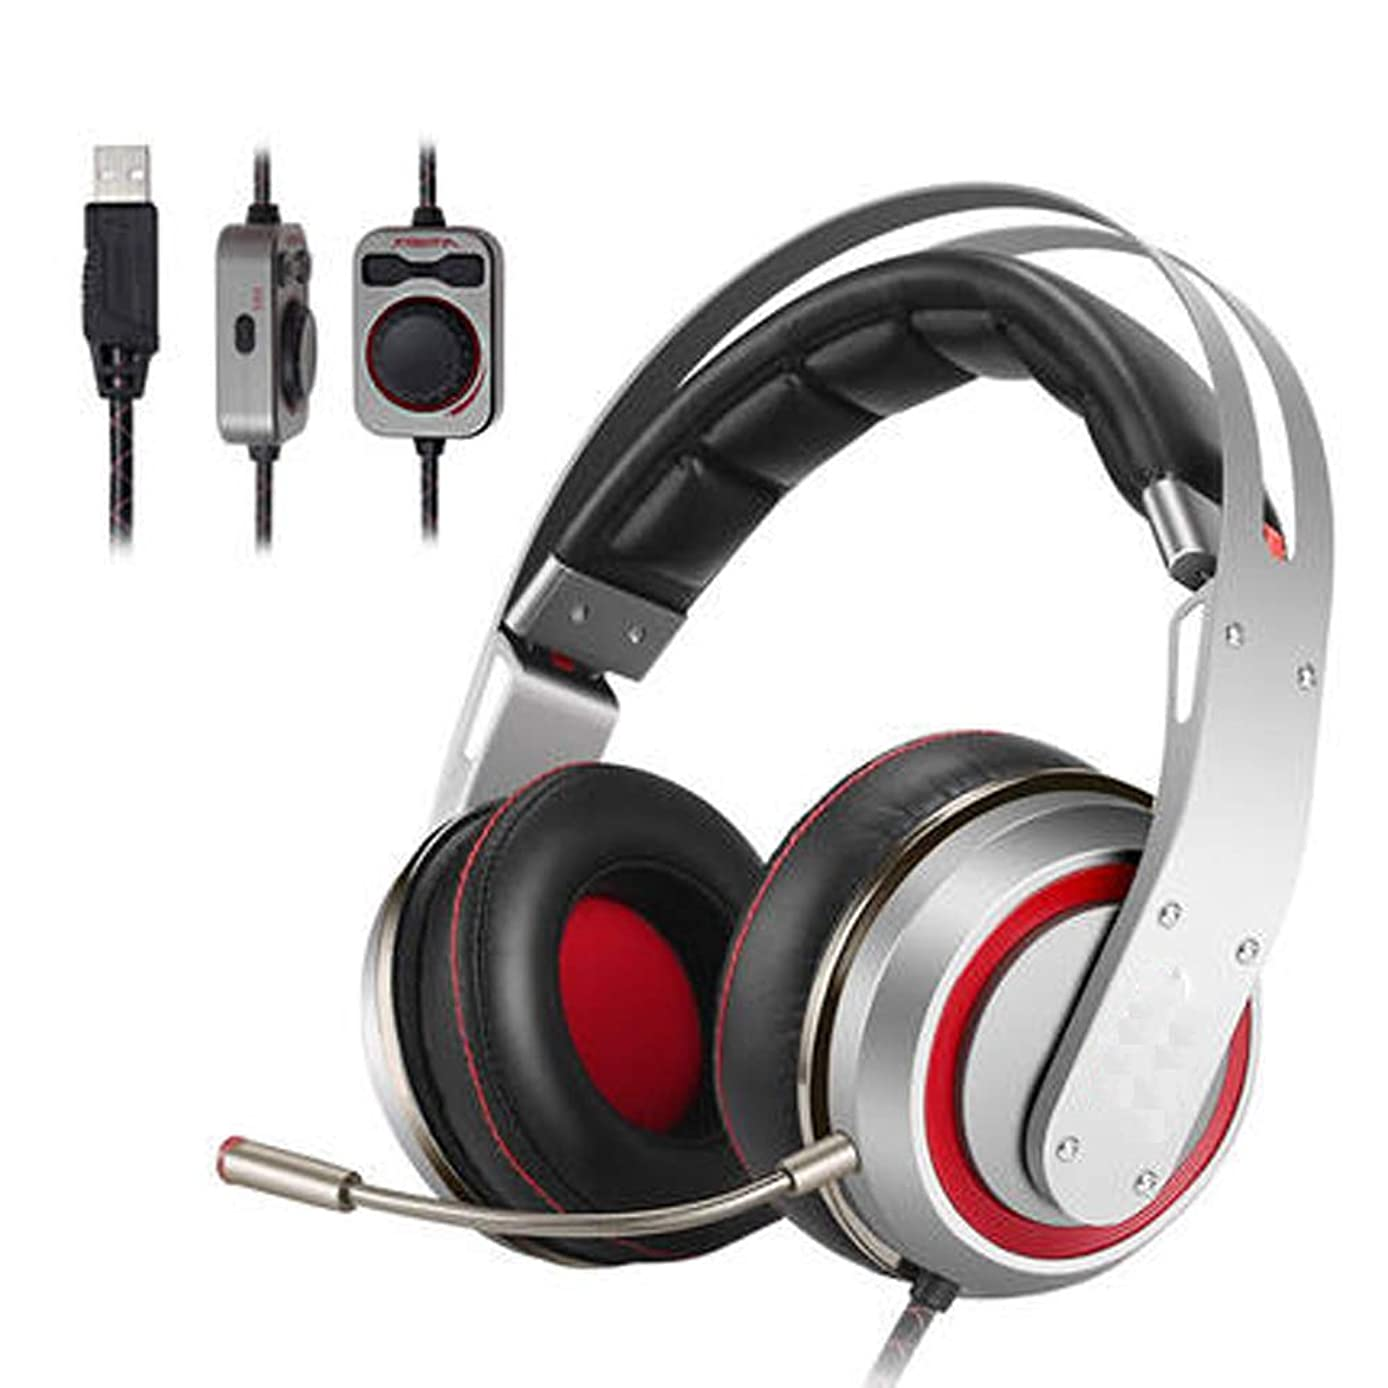 PXYUAN Gaming Headset with Mic for Xbox One PS4 PC Switch Tablet Smartphon, 3D Sound Active Smart Noise Reduction Microphone, USB Jack-Silver